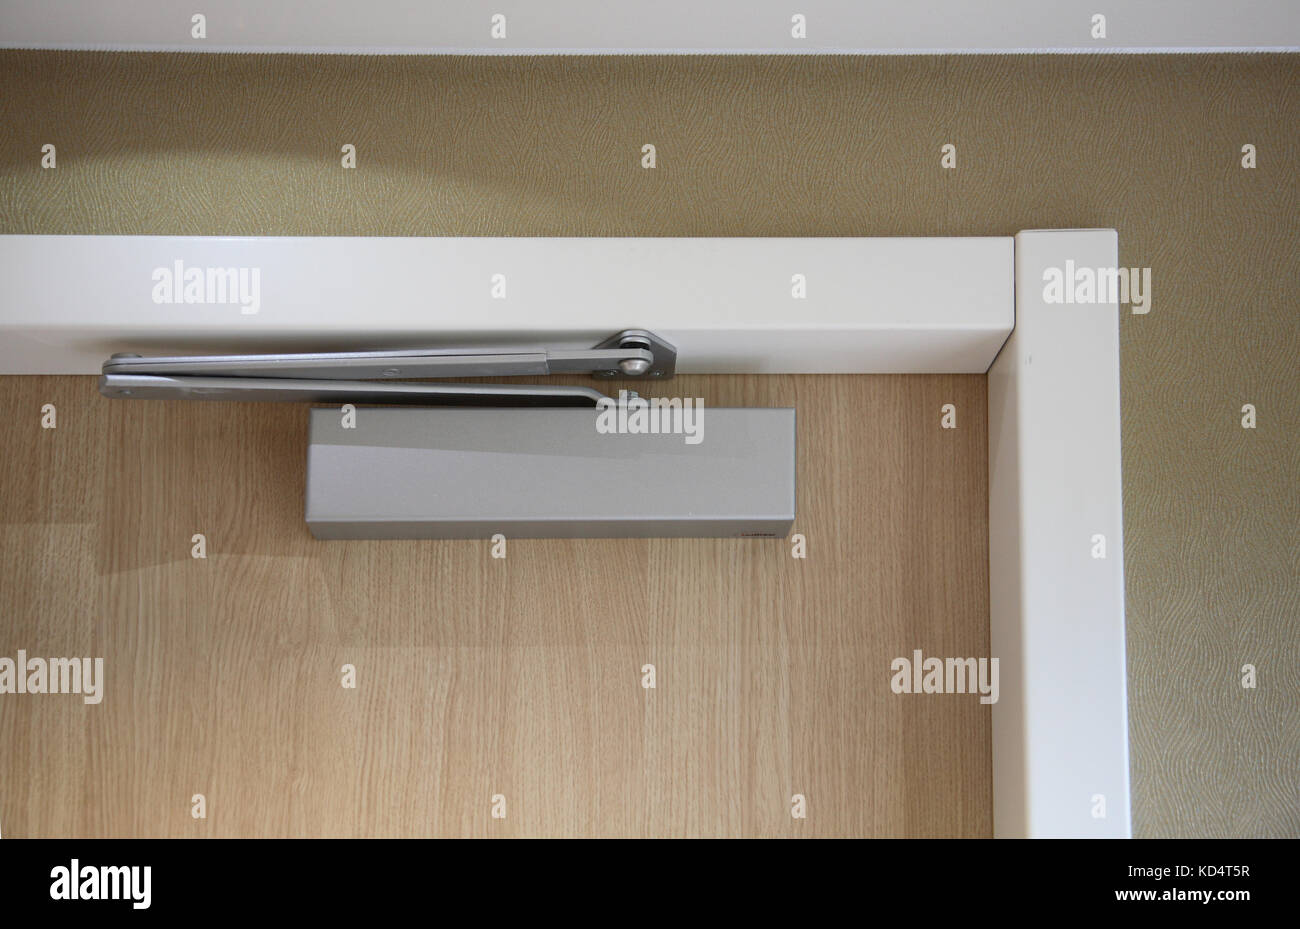 Close-up of a modern hotel room door showing door closer and other fittings to & Fire Regulations Stock Photos \u0026 Fire Regulations Stock Images - Alamy